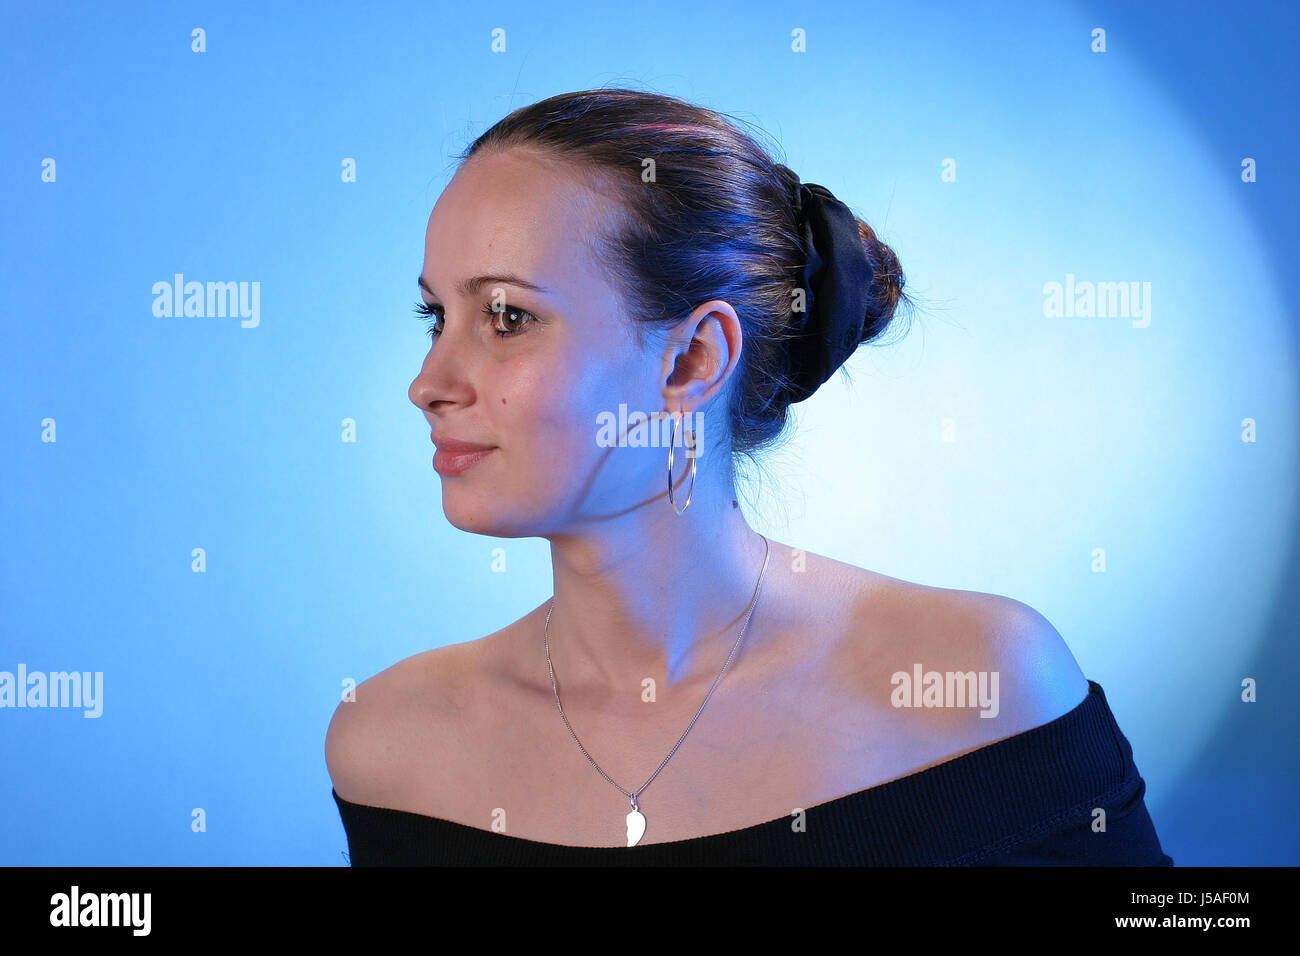 woman studio strapless dapper accosting pretty prettily prettier ravishing - Stock Image